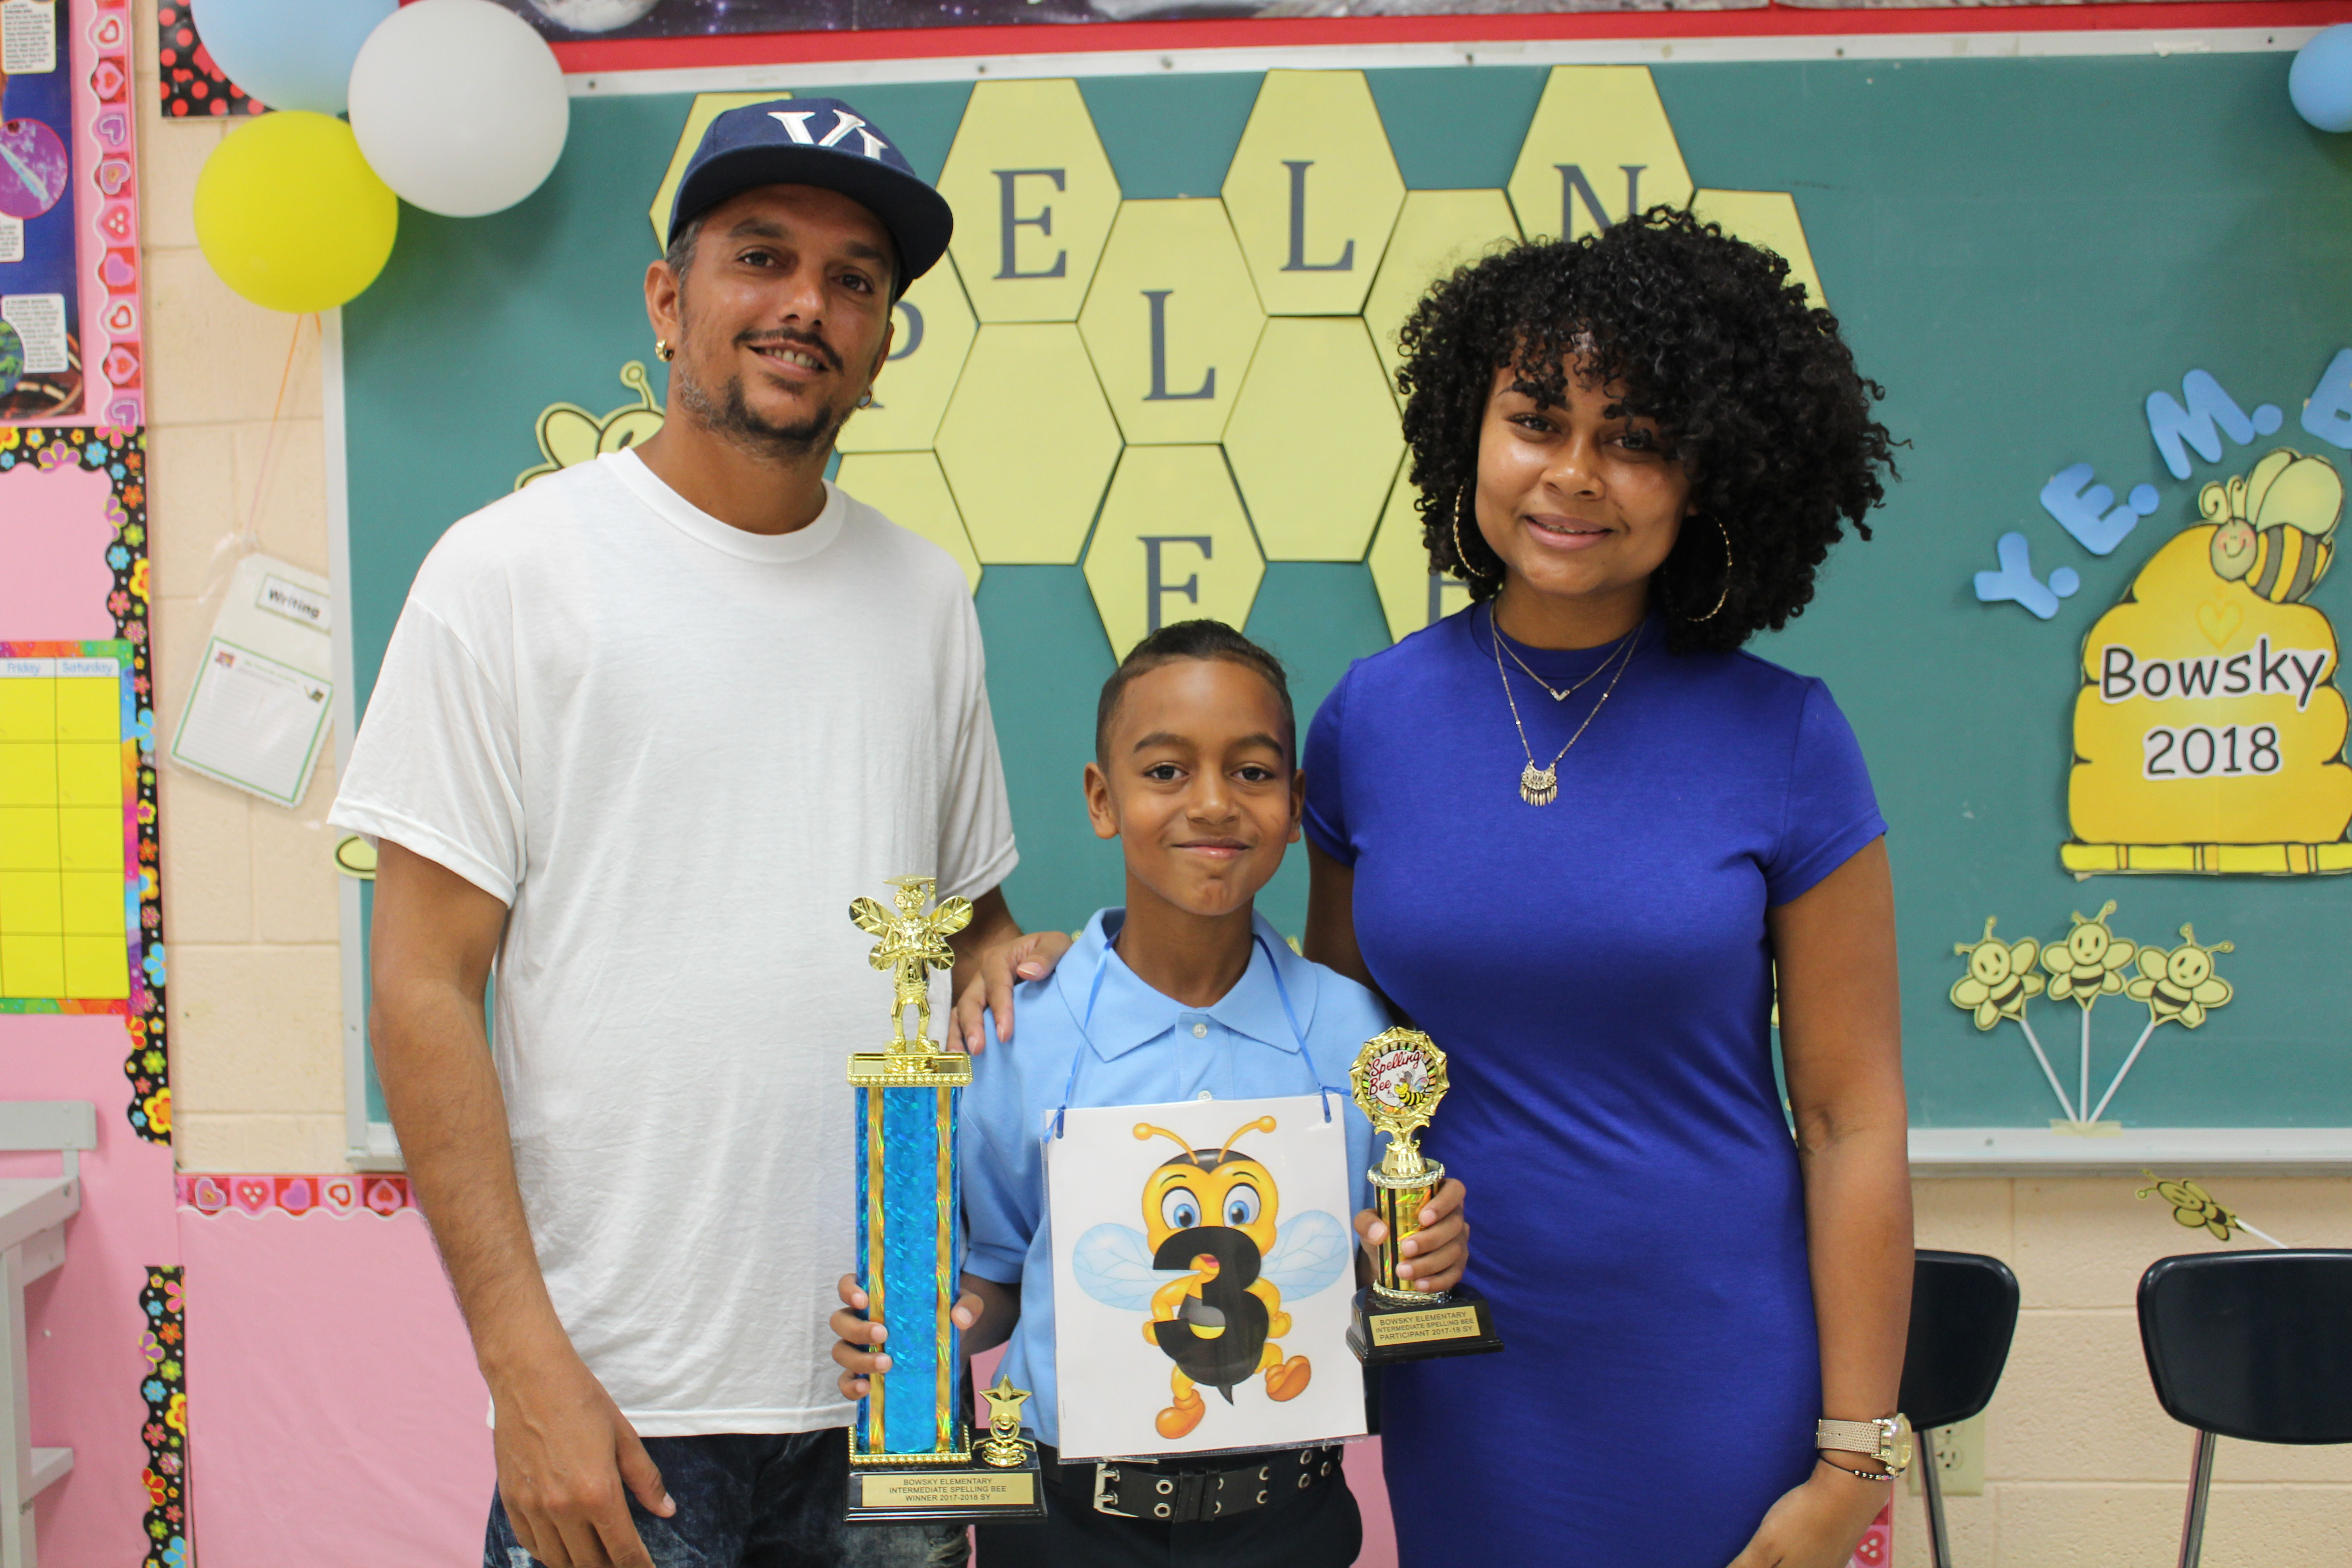 Bowsky Spelling Bee Champ Gequan Aubain and parents.JPG